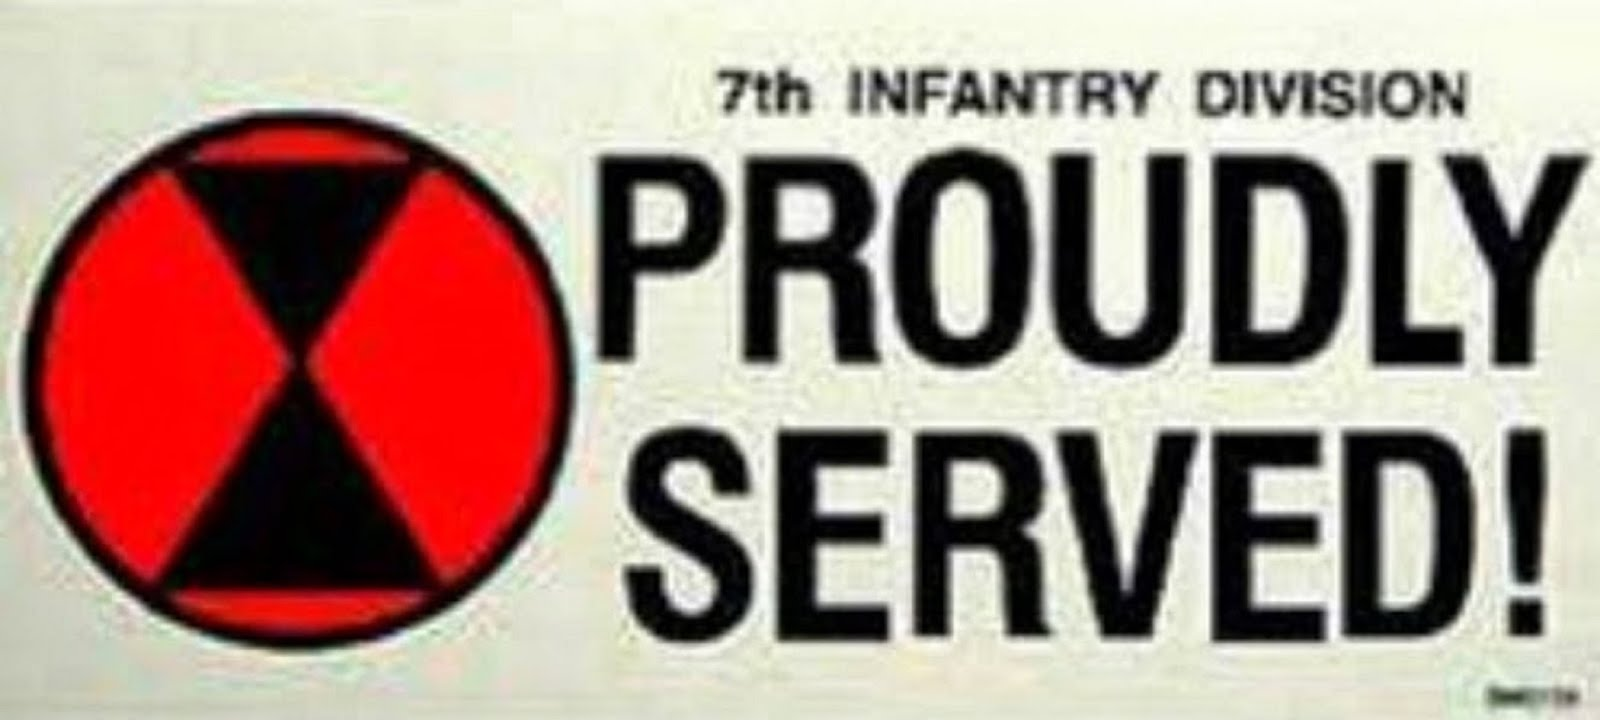 7th INFANTRY DIVISION - PROUDLY SERVED